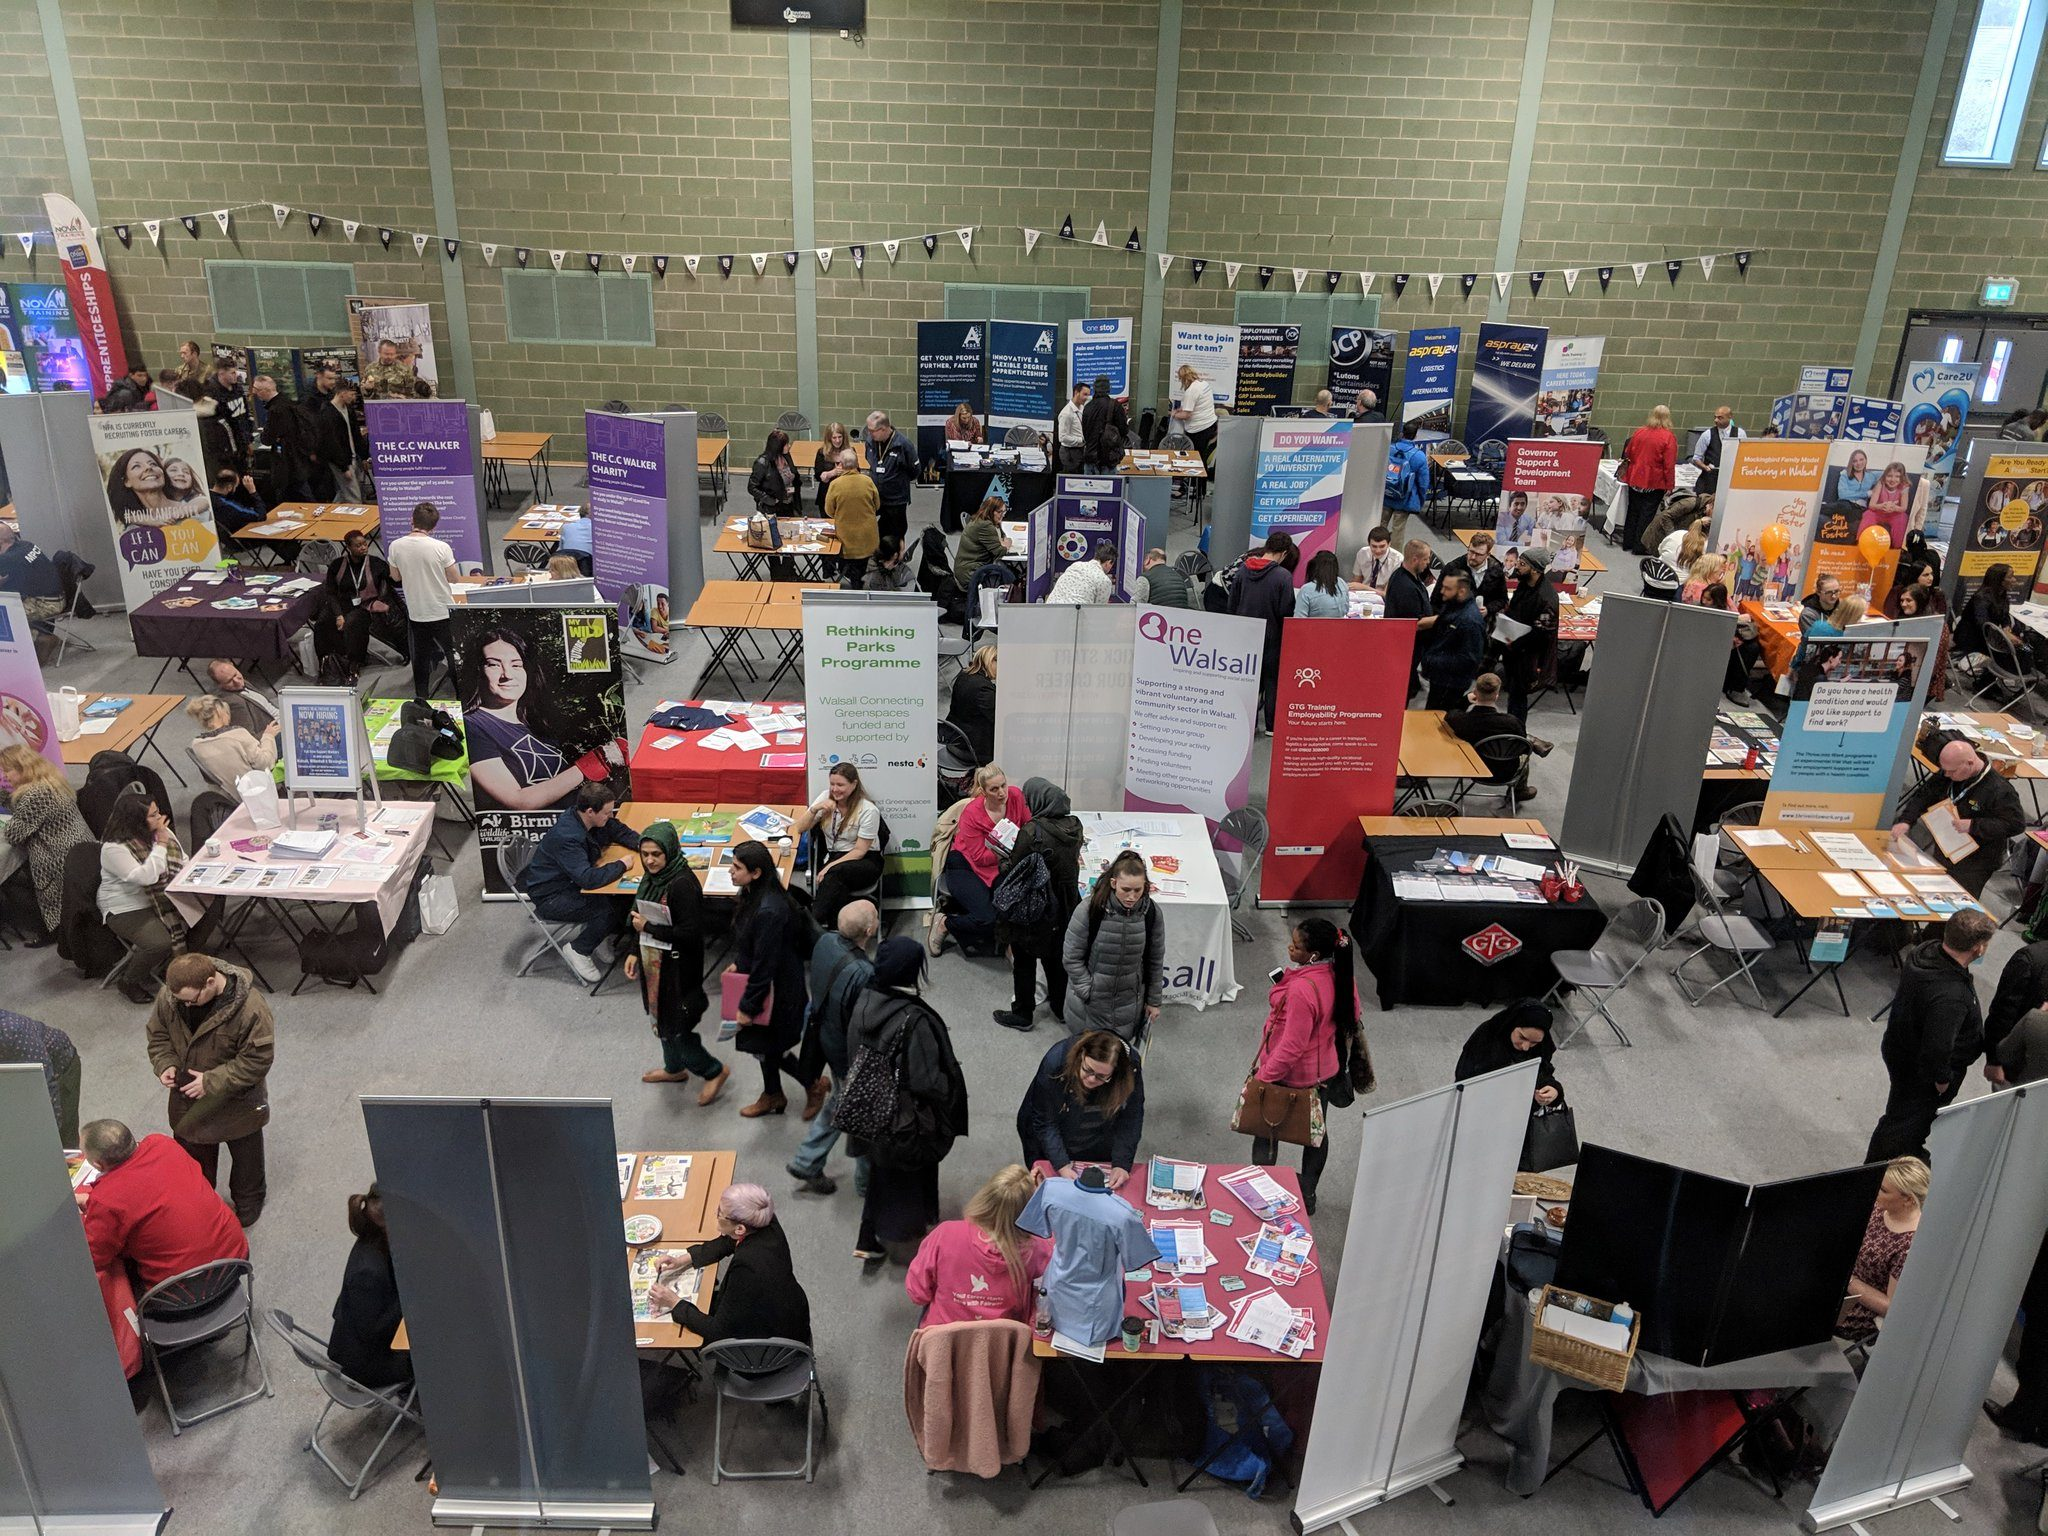 Walsall Works Expo 2019